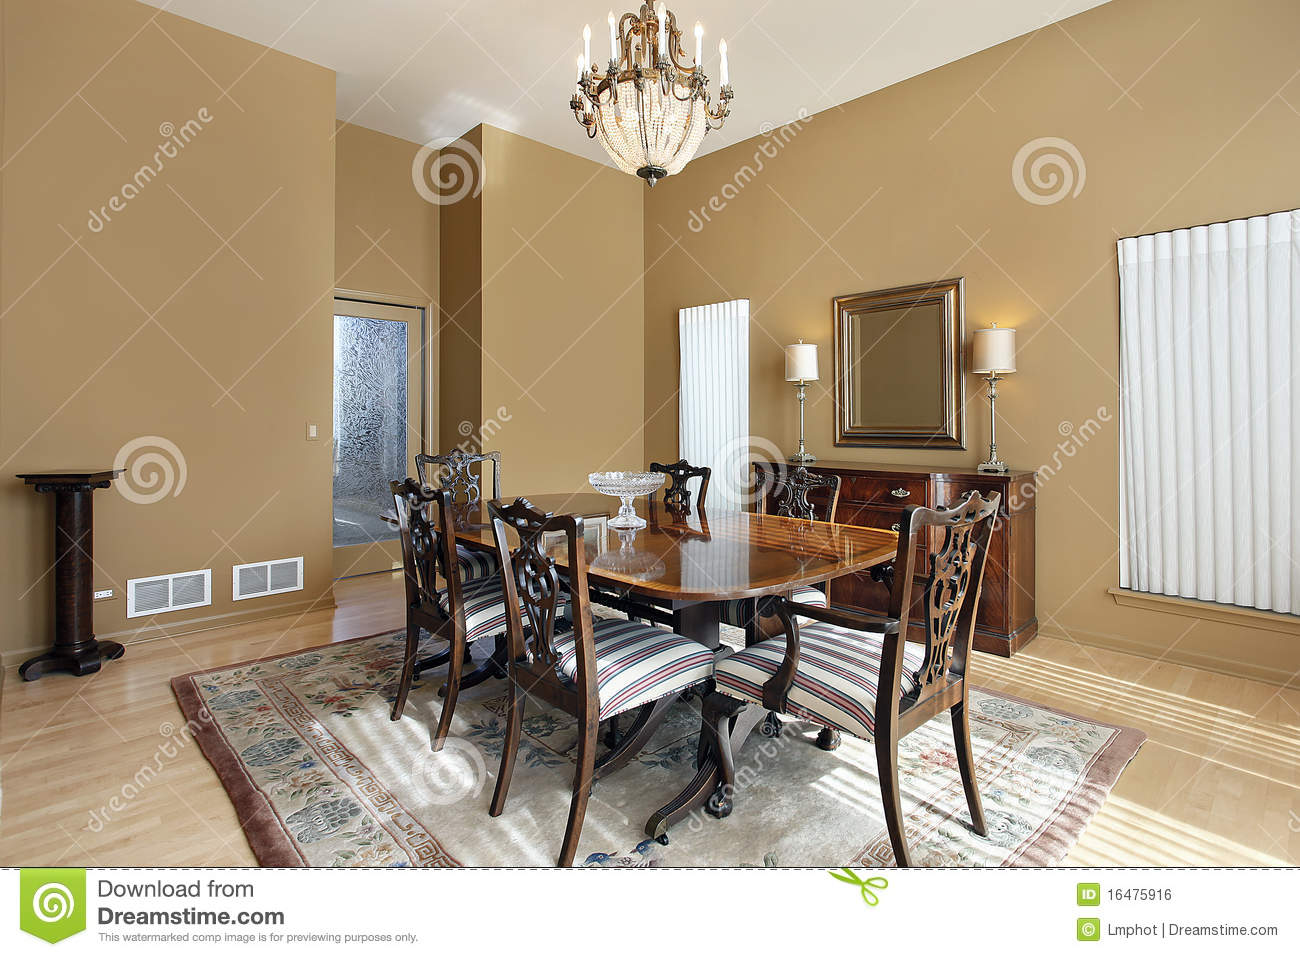 Dining Room With Tan Walls Royalty Free Stock Image